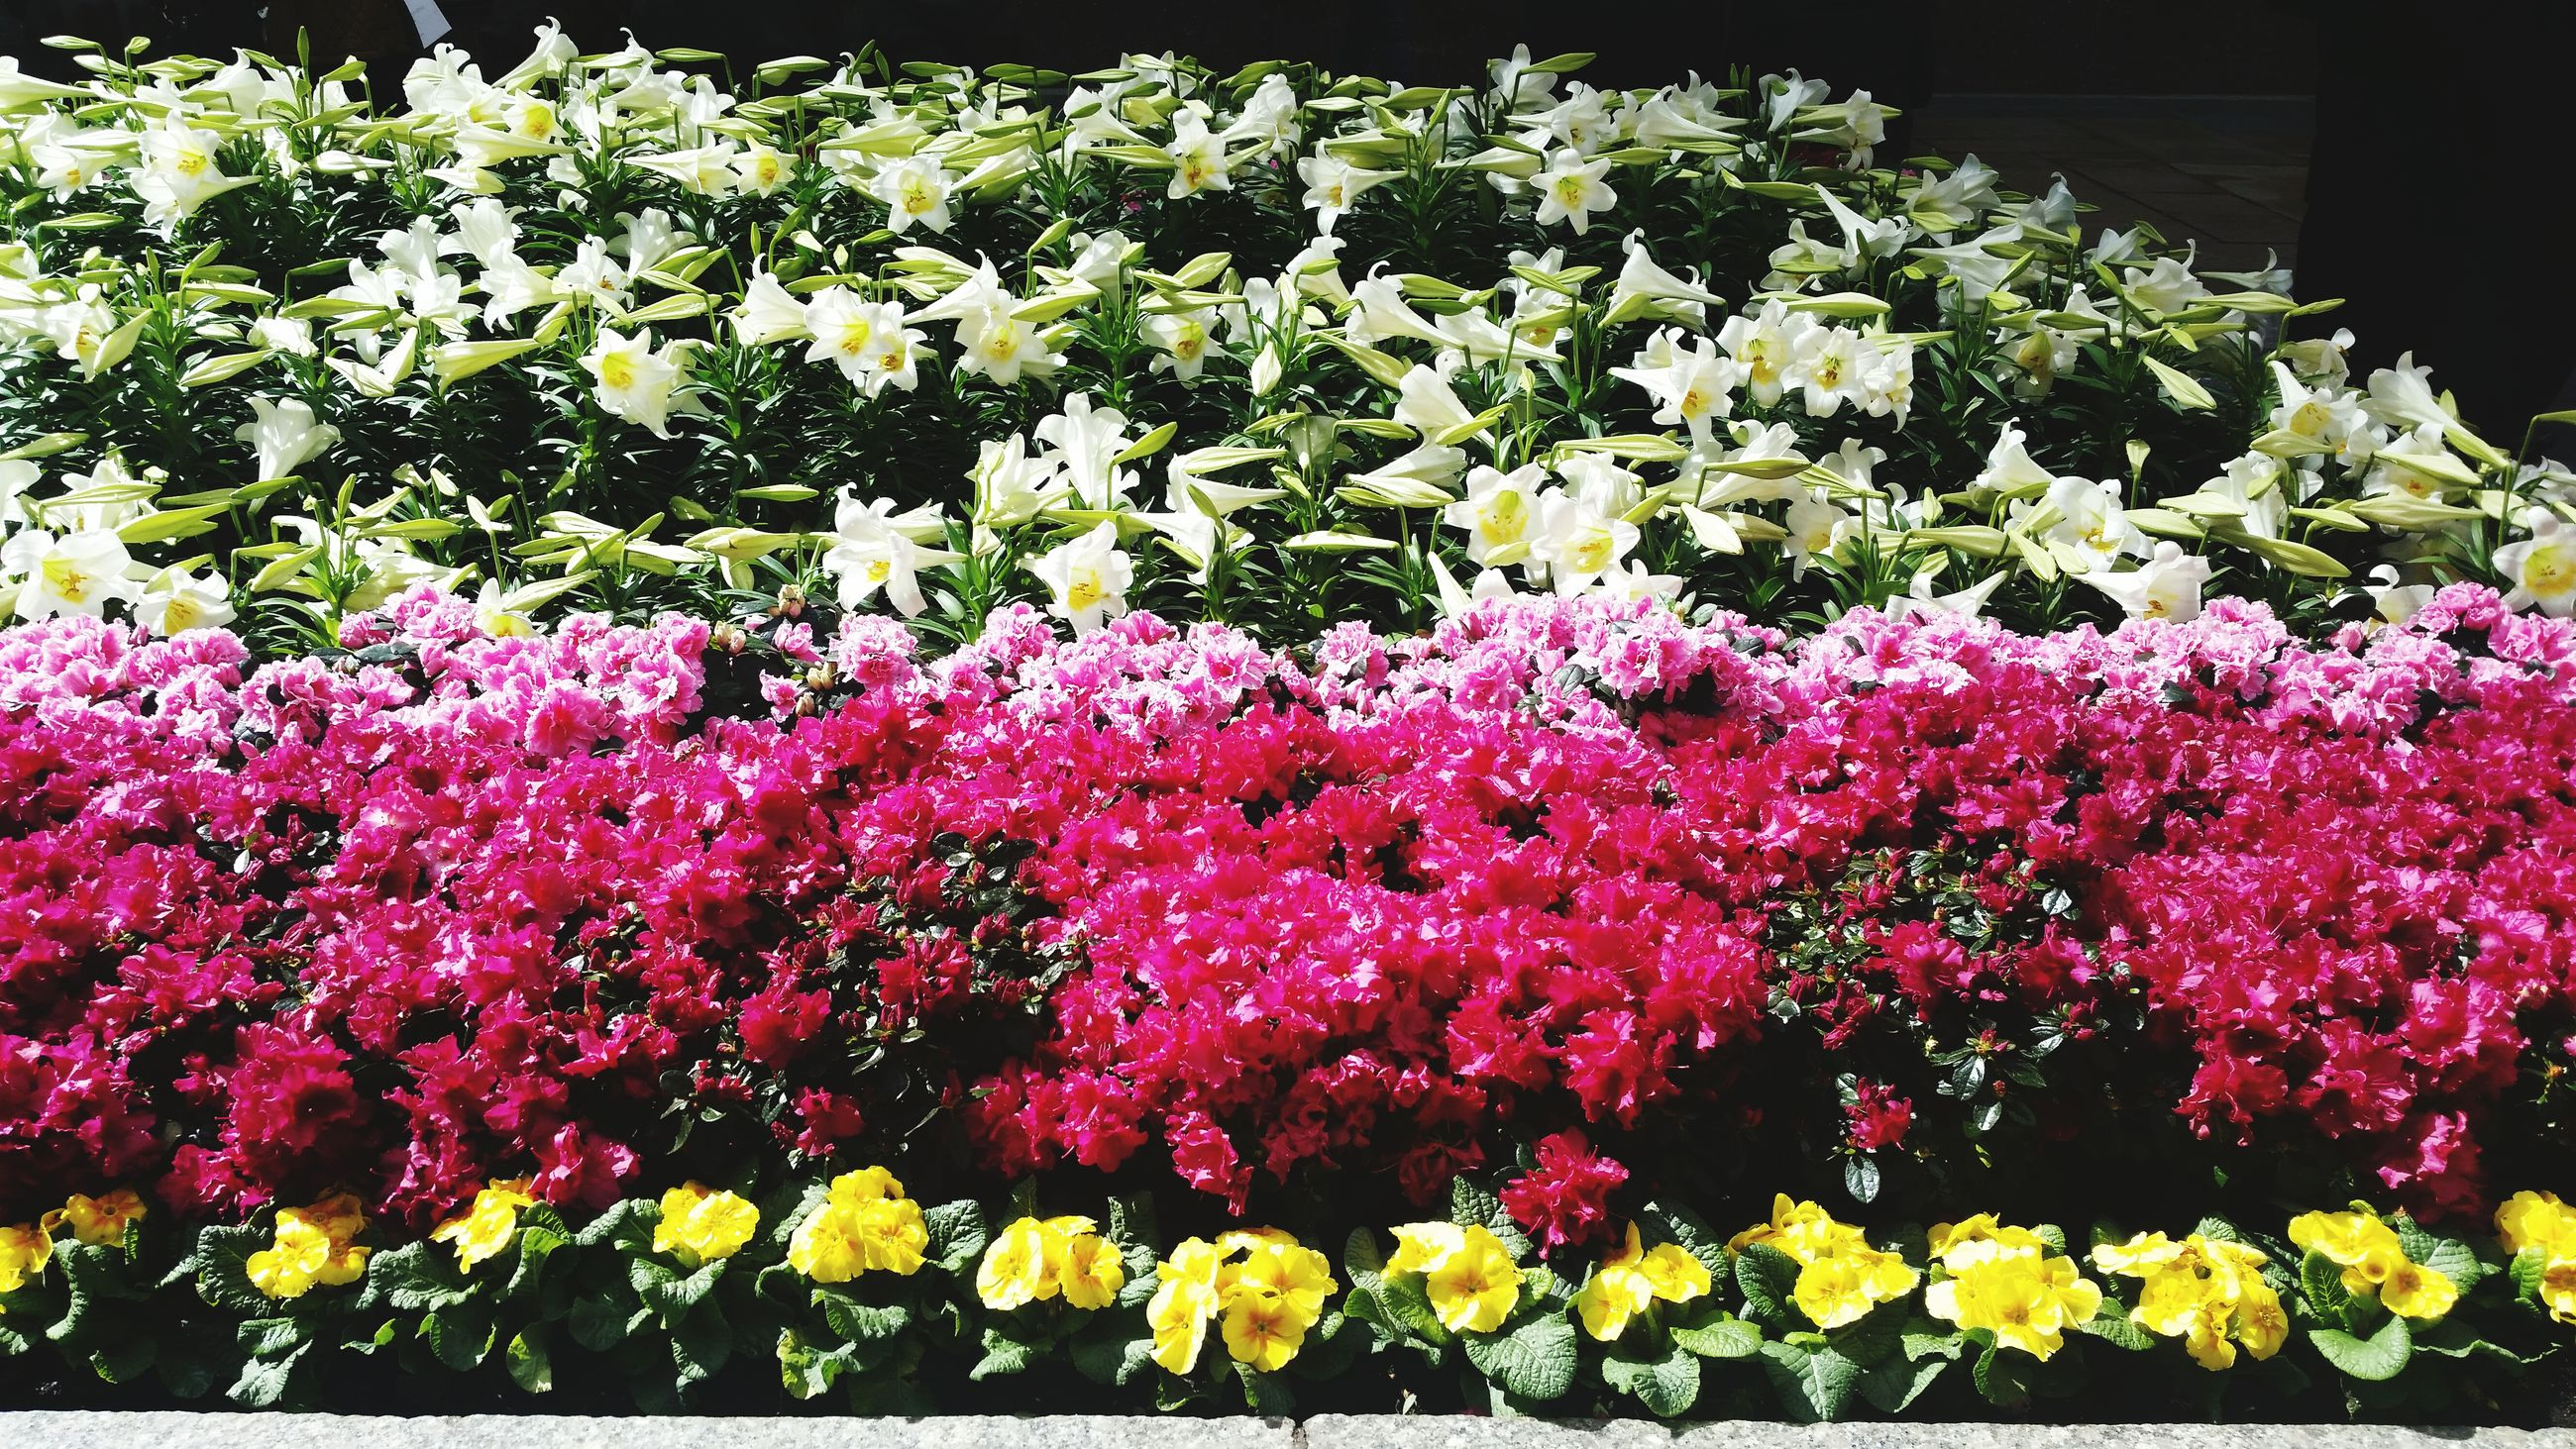 flower, freshness, growth, fragility, beauty in nature, petal, blooming, nature, plant, abundance, flower head, in bloom, flowerbed, blossom, pink color, high angle view, park - man made space, springtime, botany, field